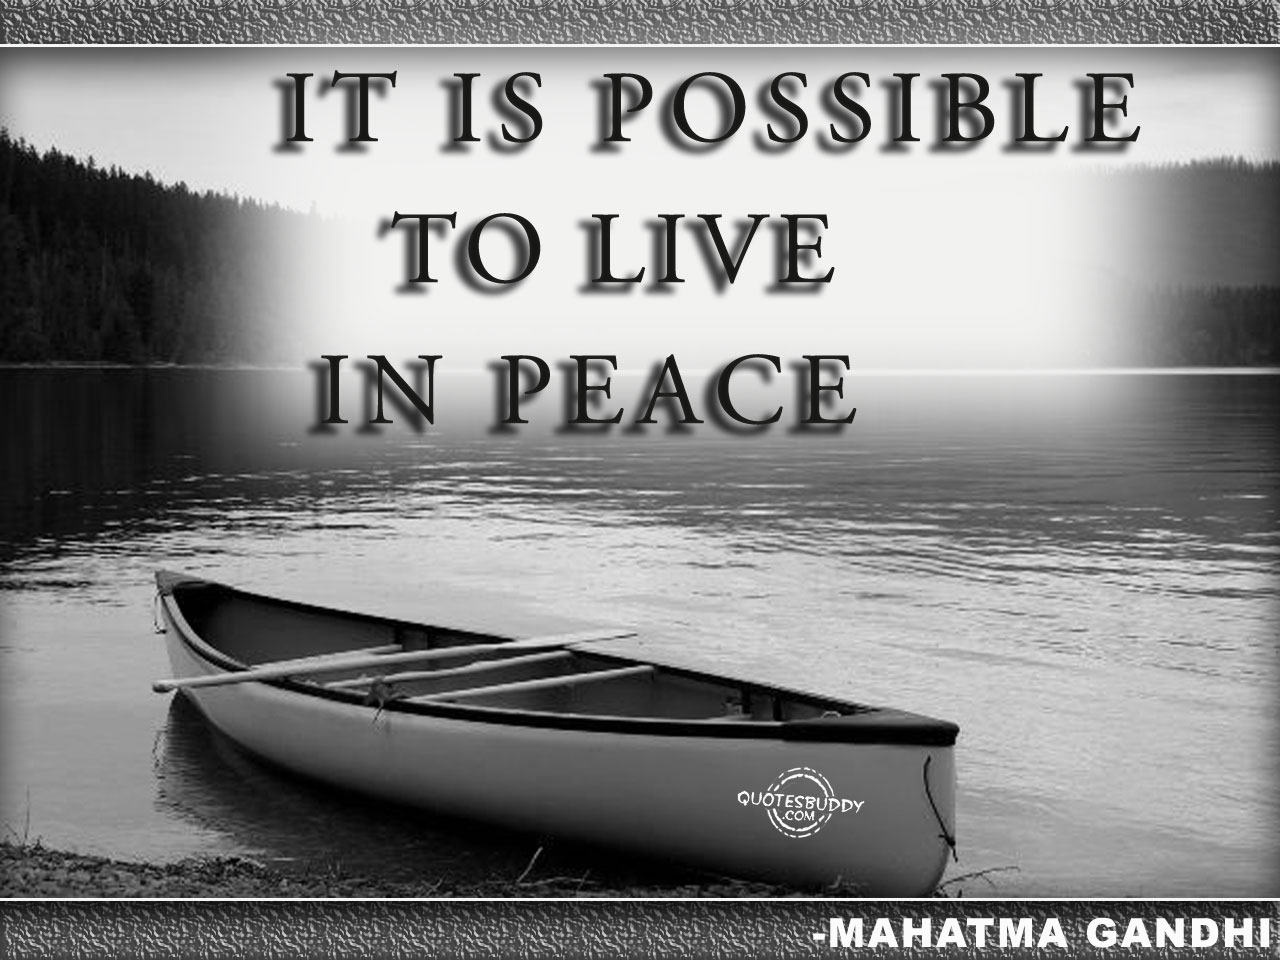 Peace Quotes And Sayings Quotesgram: Quotes By Gandhi About Peace. QuotesGram